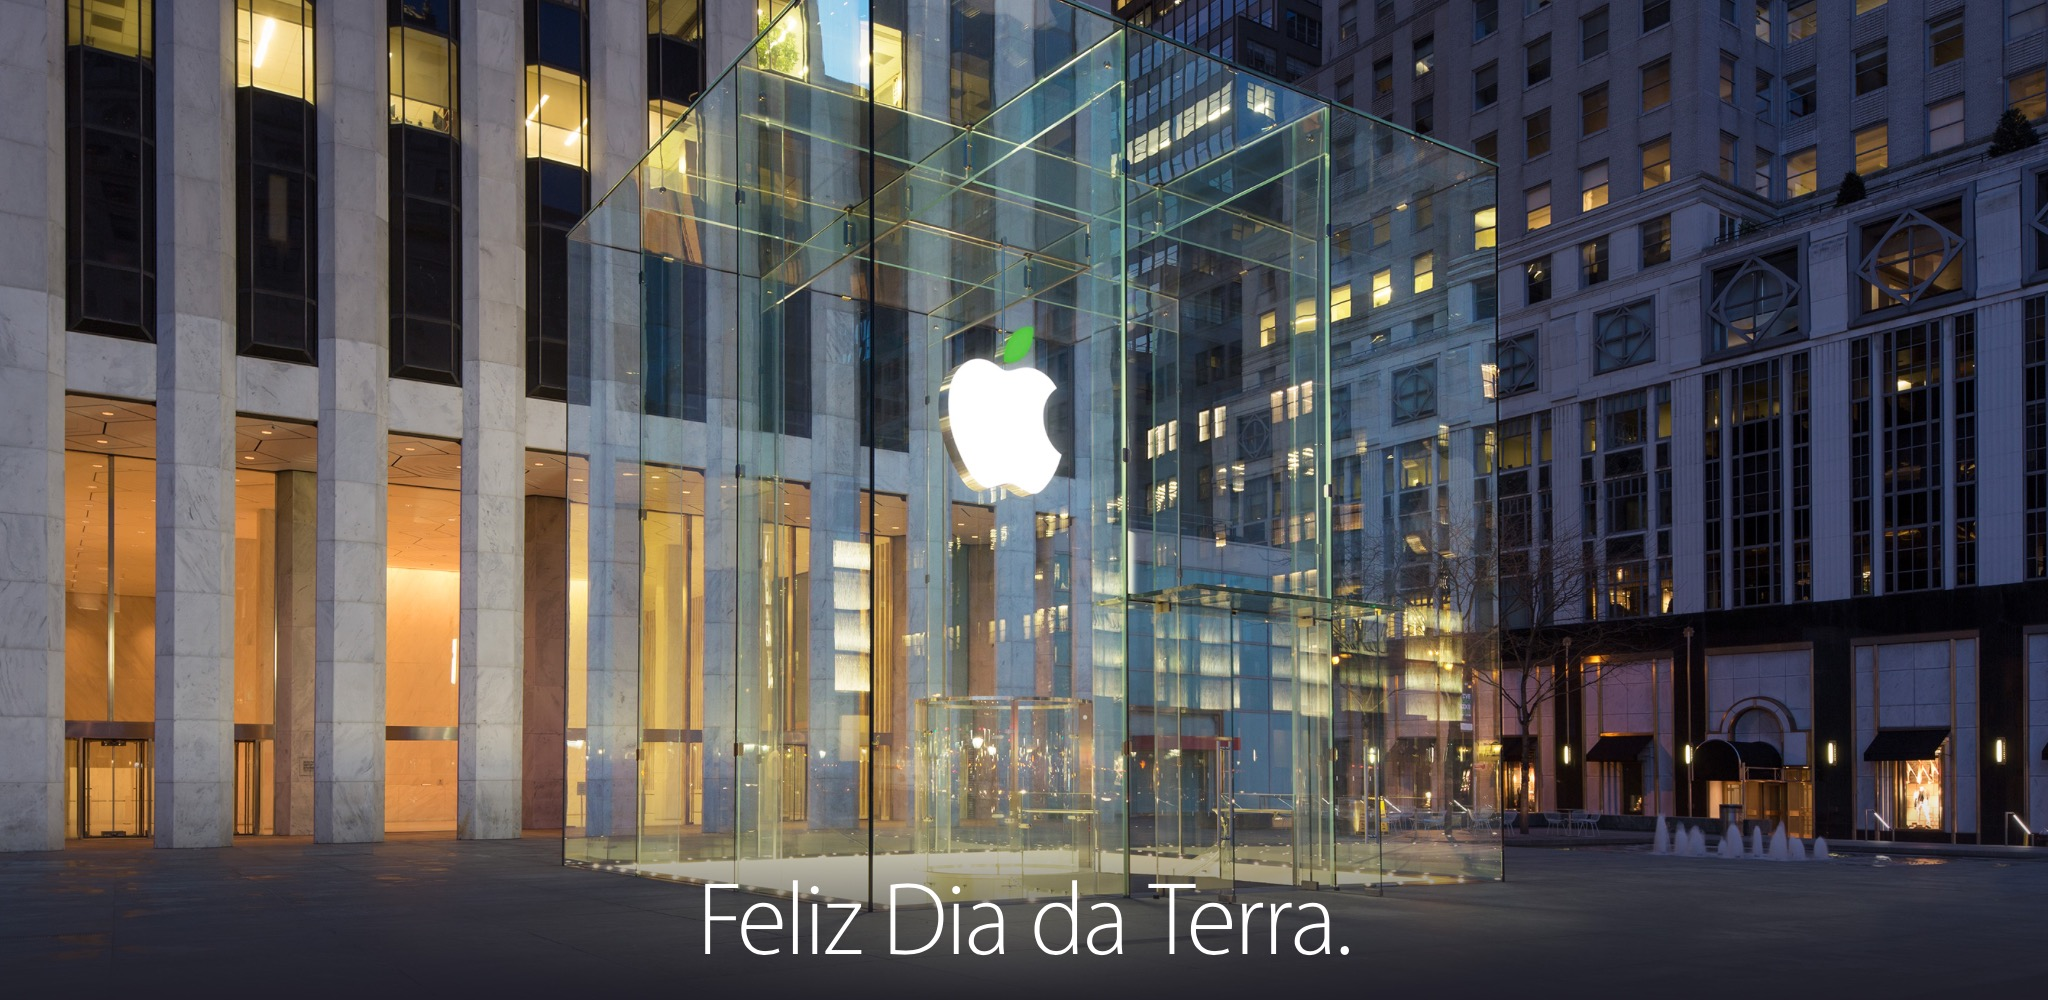 Photo of Apple comemora o Dia da Terra com vídeo usando o iMessage